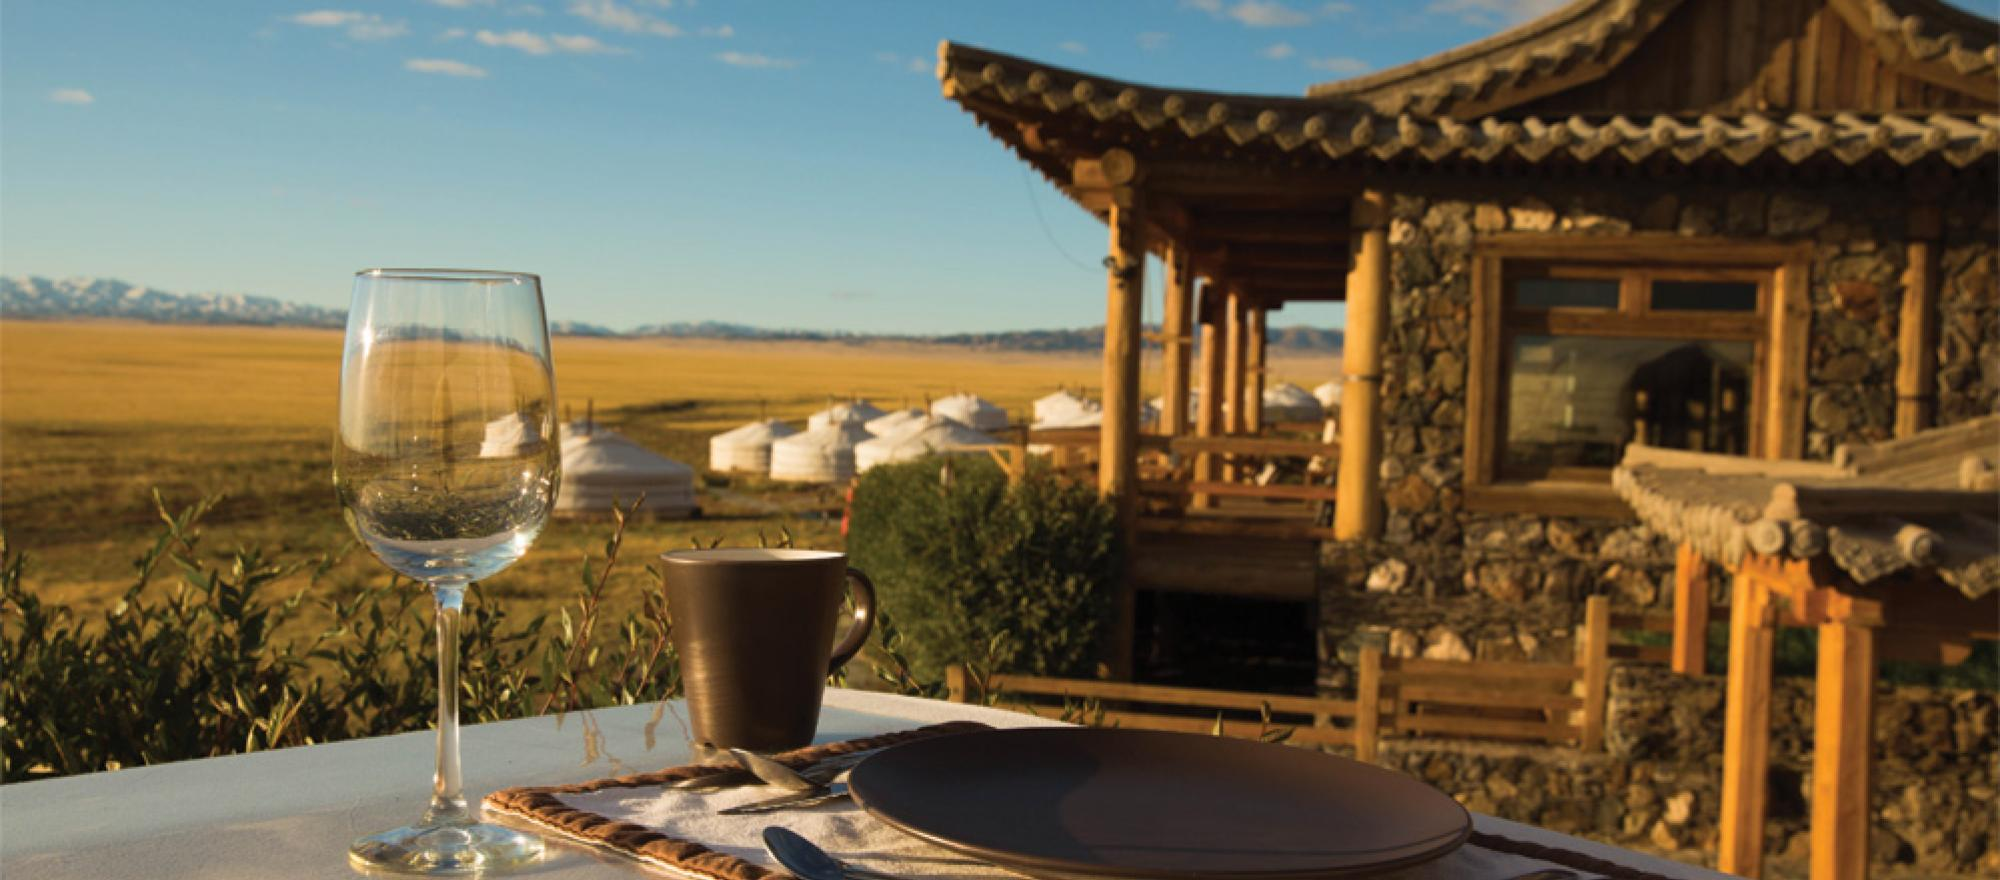 At the heart of the 500,000-square-mile Gobi Desert, hundreds of miles from the nearest Wi-Fi, is Three Camel Lodge.